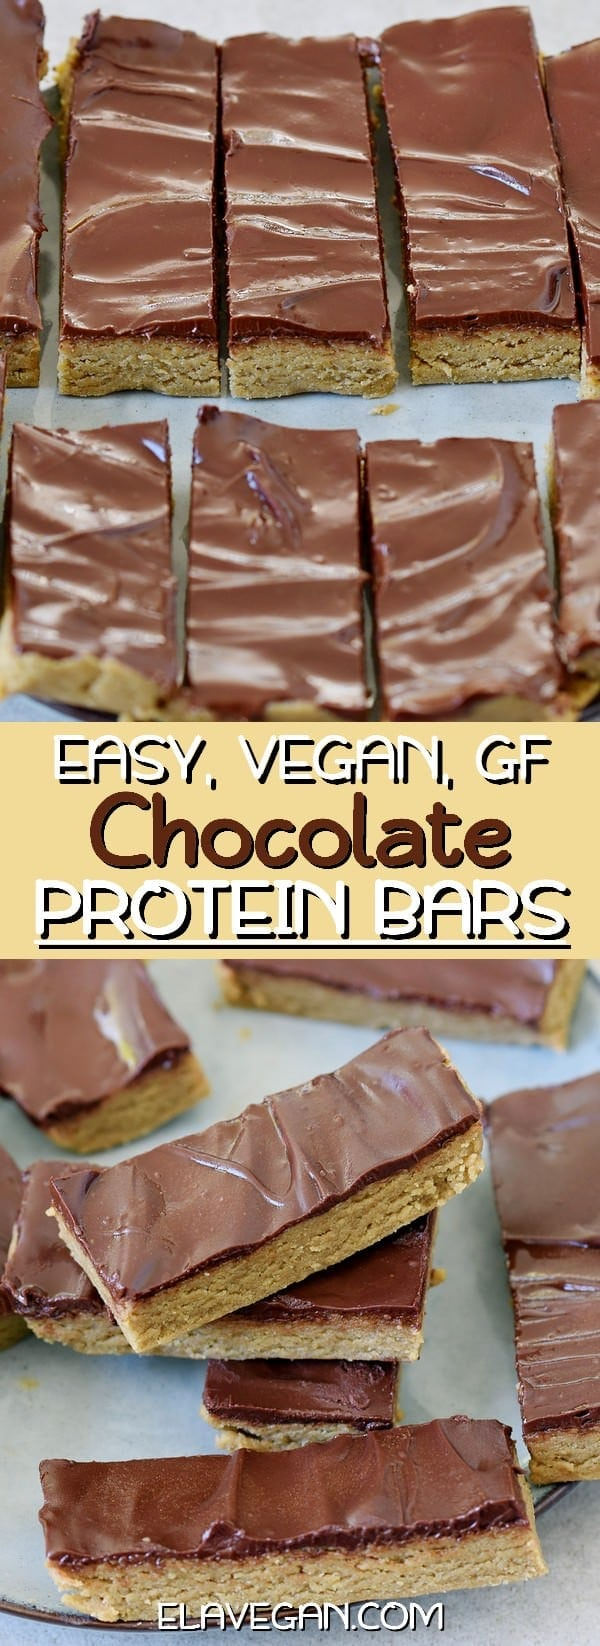 easy vegan gluten-free protein chocolate bars